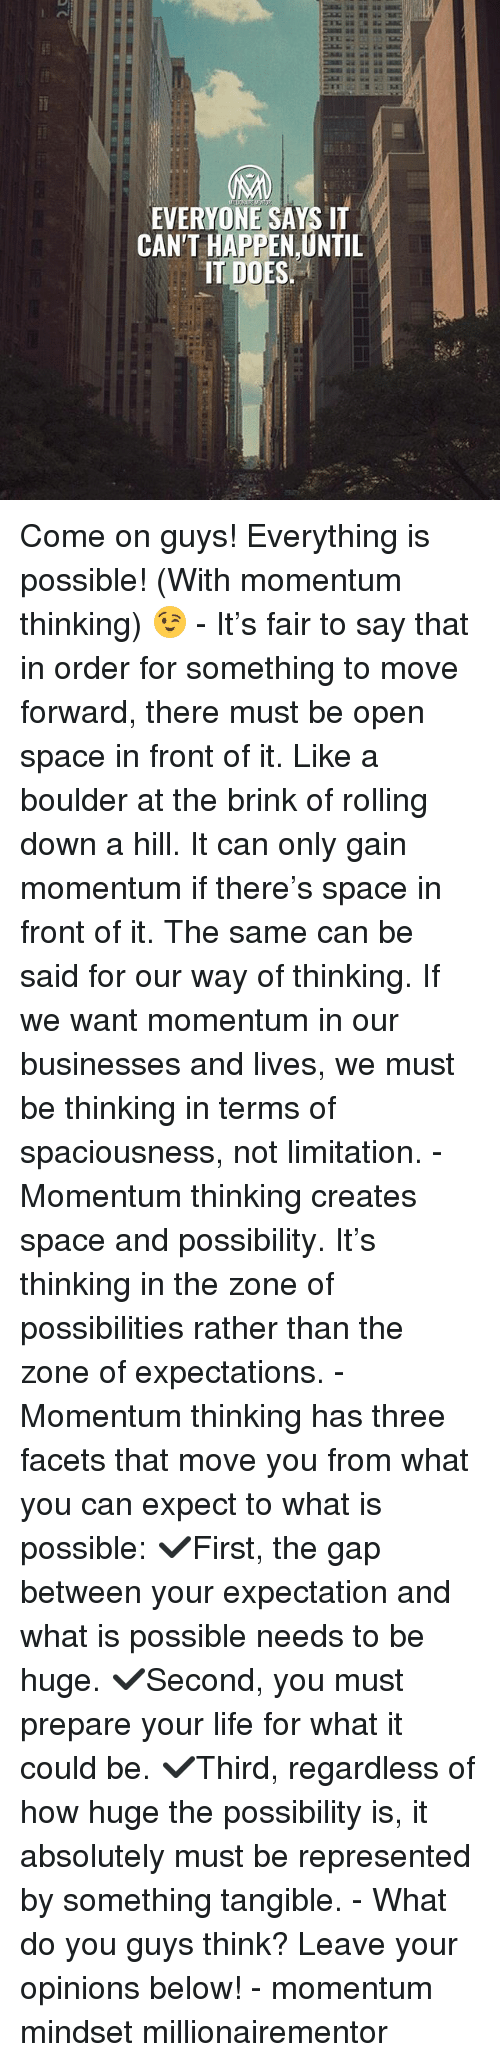 Life, Memes, and The Gap: EVERYONE SAYS IT  CAN'T HAPPEN UNTIL  IT DOES. Come on guys! Everything is possible! (With momentum thinking) 😉 - It's fair to say that in order for something to move forward, there must be open space in front of it. Like a boulder at the brink of rolling down a hill. It can only gain momentum if there's space in front of it. The same can be said for our way of thinking. If we want momentum in our businesses and lives, we must be thinking in terms of spaciousness, not limitation. - Momentum thinking creates space and possibility. It's thinking in the zone of possibilities rather than the zone of expectations. - Momentum thinking has three facets that move you from what you can expect to what is possible: ✔️First, the gap between your expectation and what is possible needs to be huge. ✔️Second, you must prepare your life for what it could be. ✔️Third, regardless of how huge the possibility is, it absolutely must be represented by something tangible. - What do you guys think? Leave your opinions below! - momentum mindset millionairementor